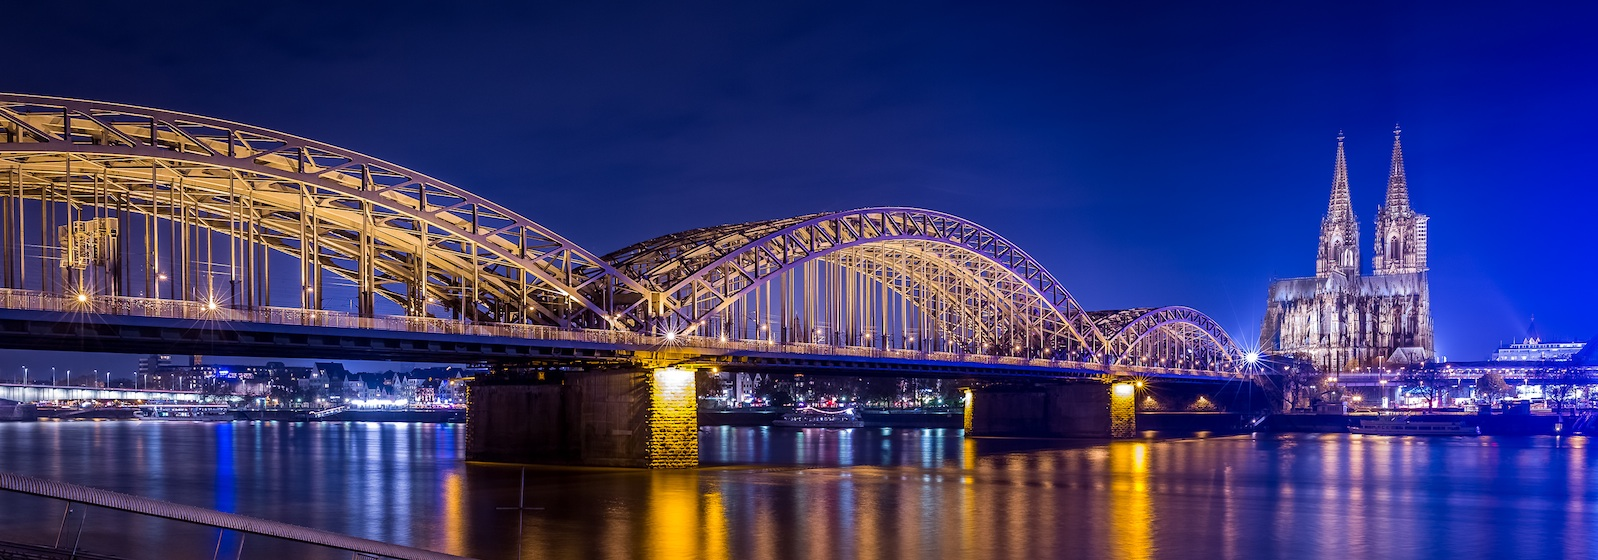 cologne-bridge-cathedral